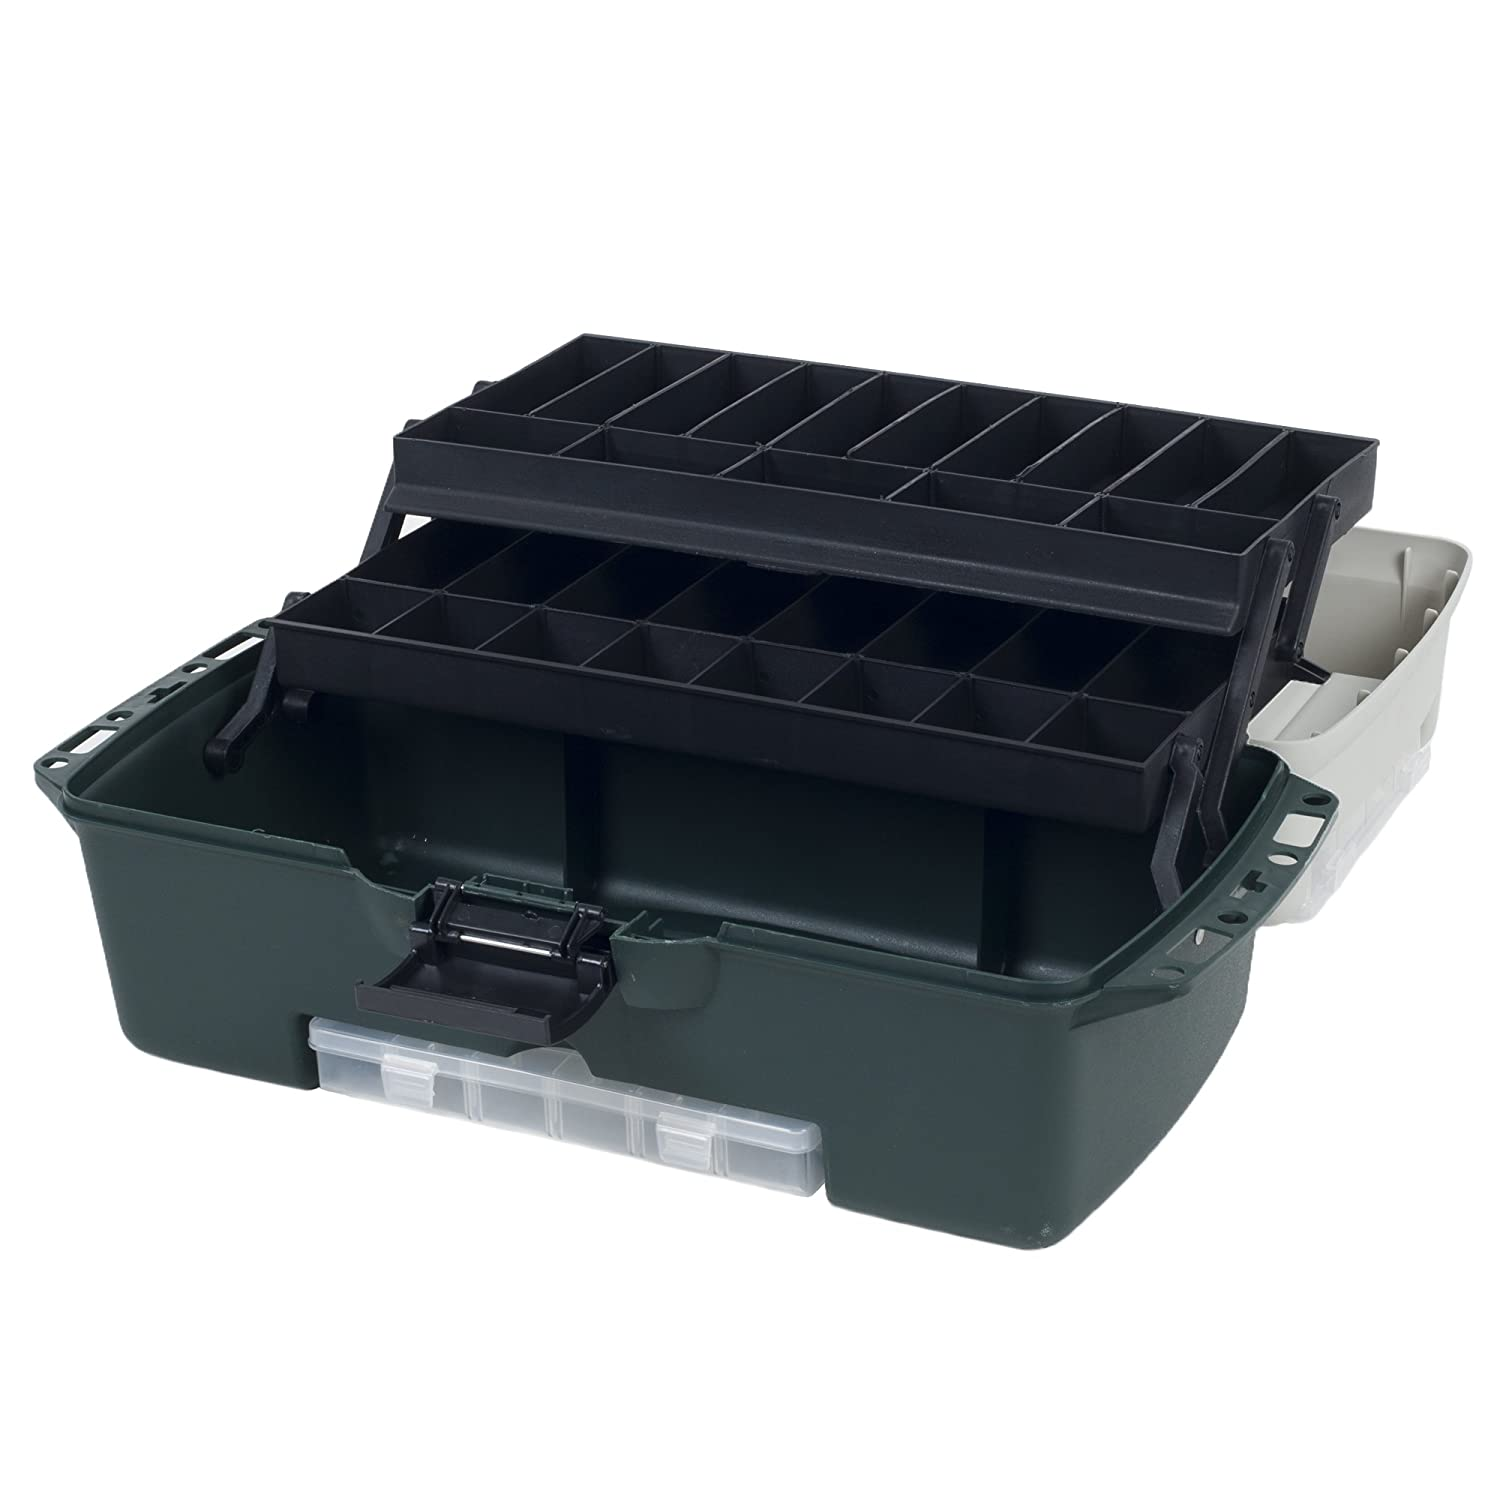 Wakeman Fishing 2-Tray Tackle Box with 3 Removable Organizers 18-Inch